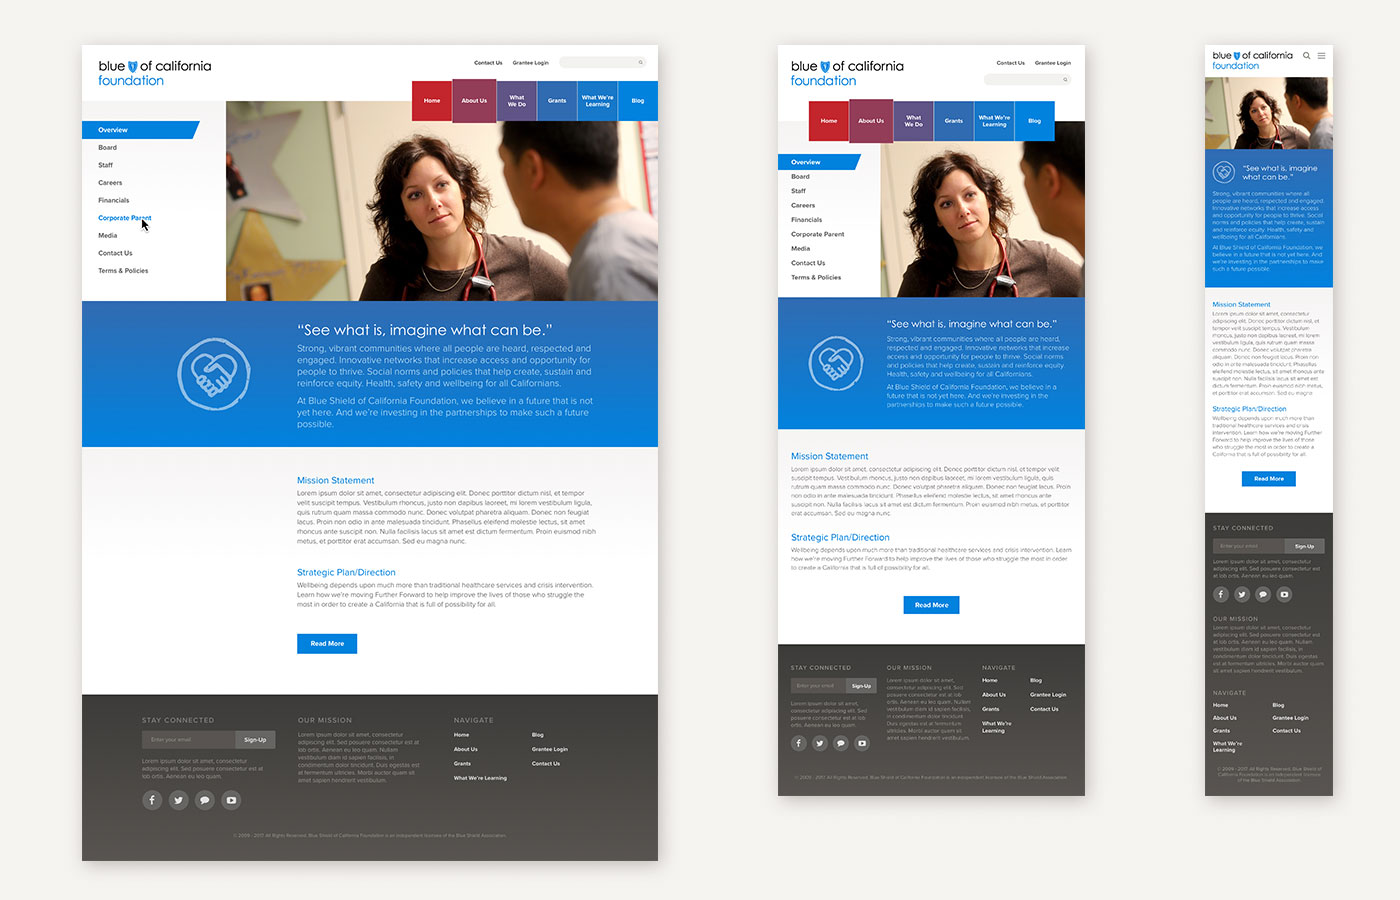 Blue Shield of California Foundation Website Design About Page